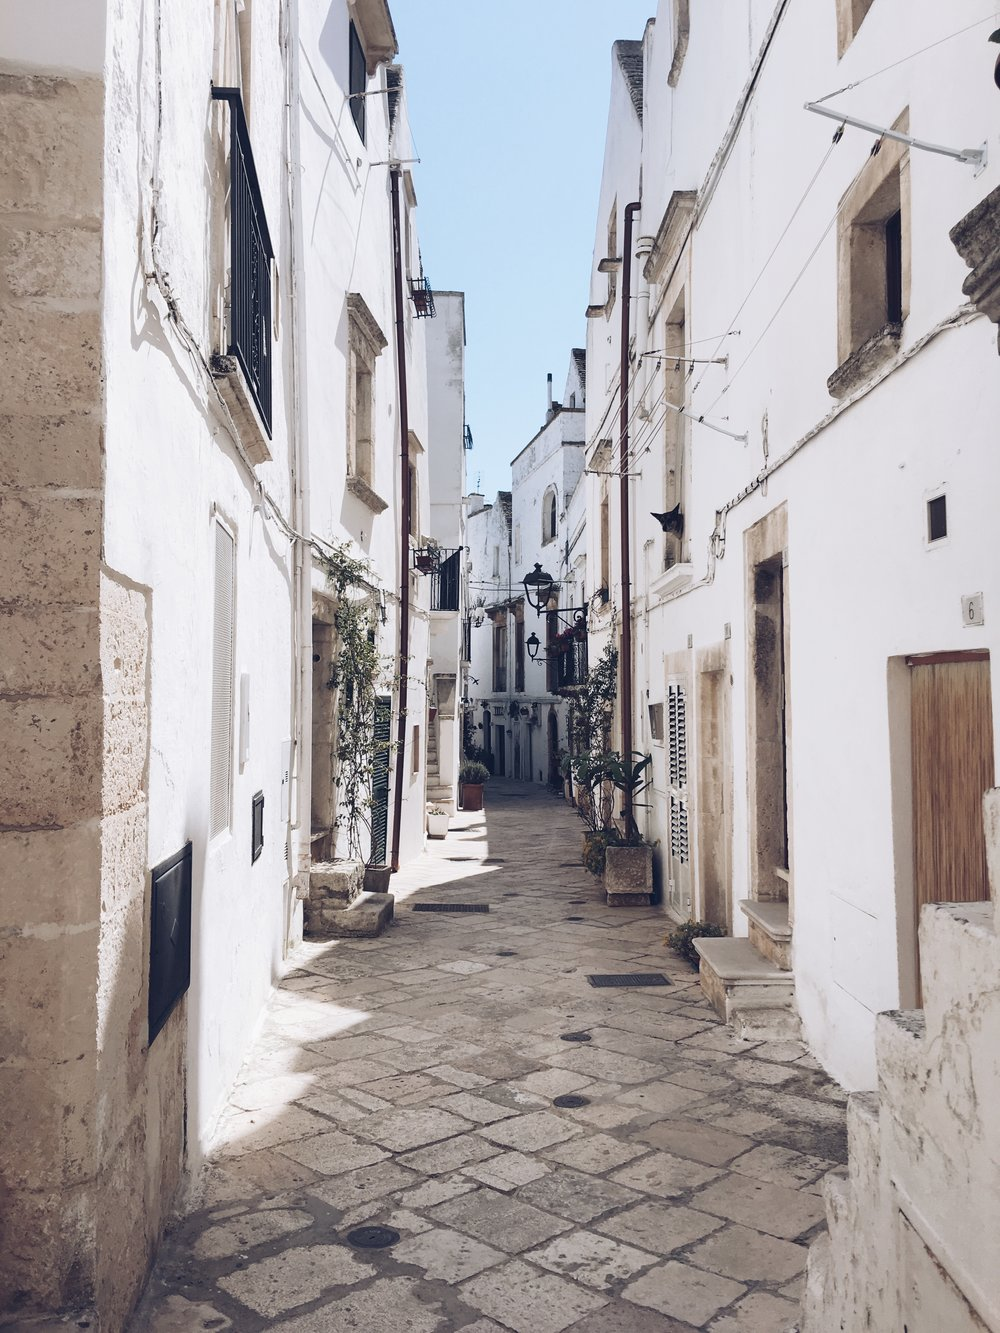 Narrow alleyways of Locorotondo